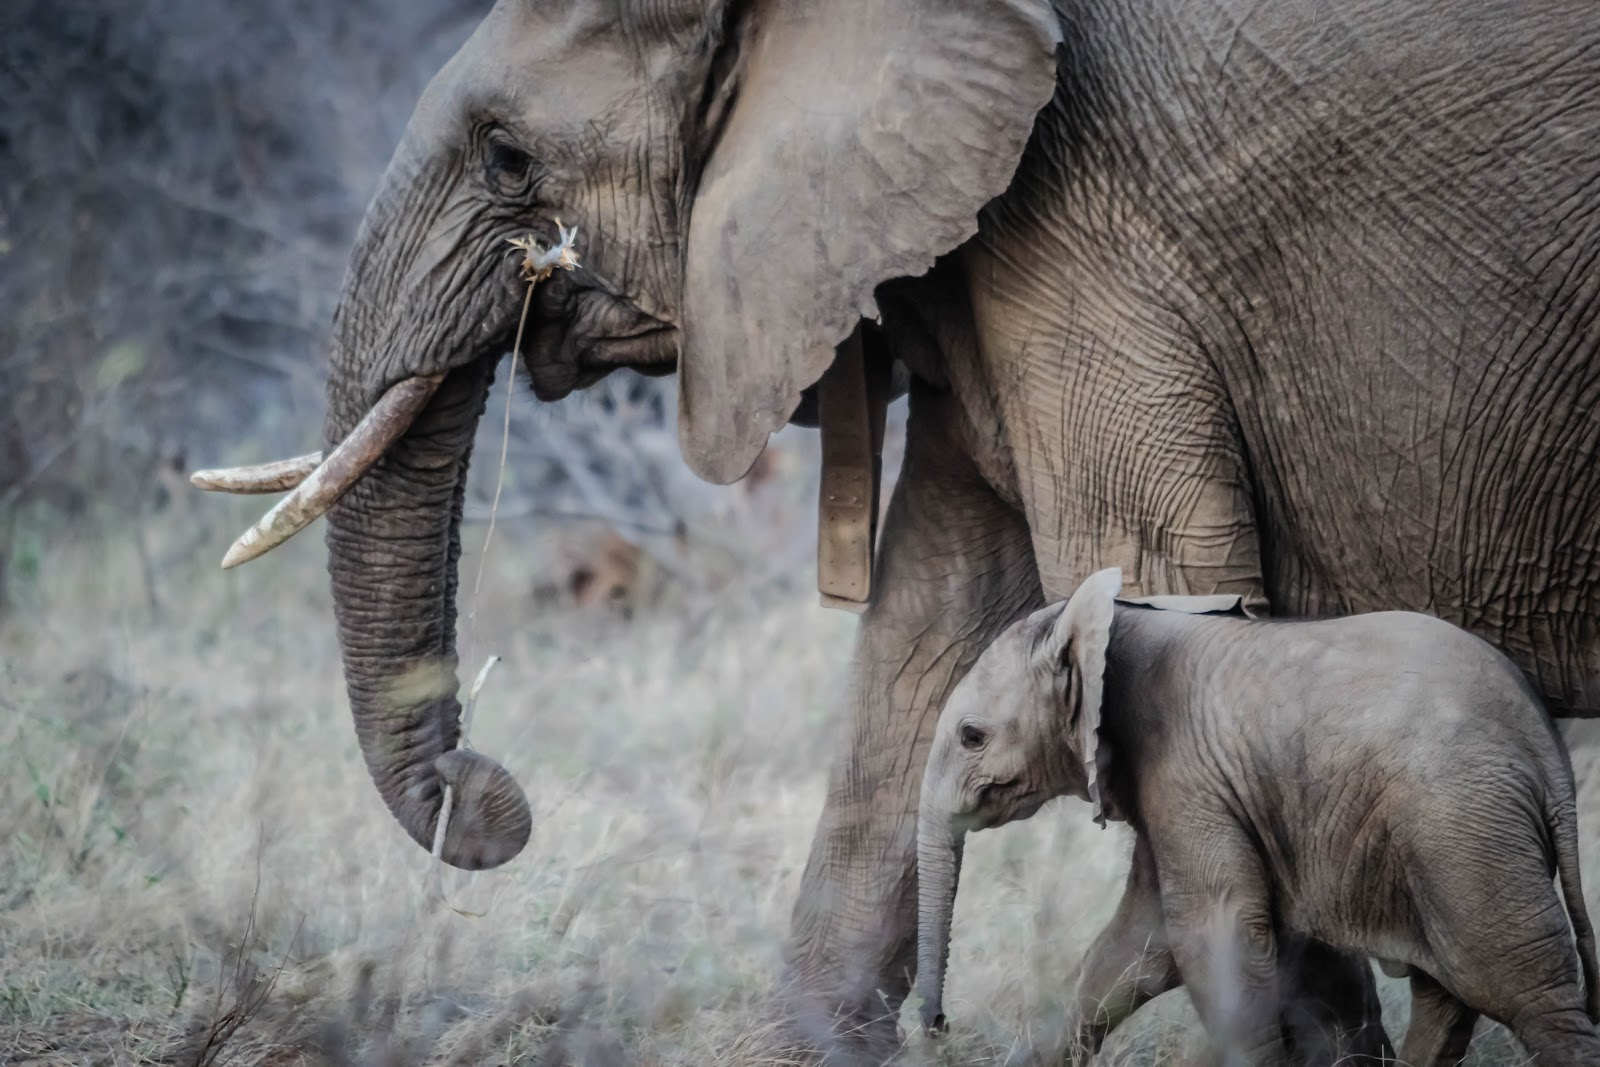 Mother and baby elephant walking through grass